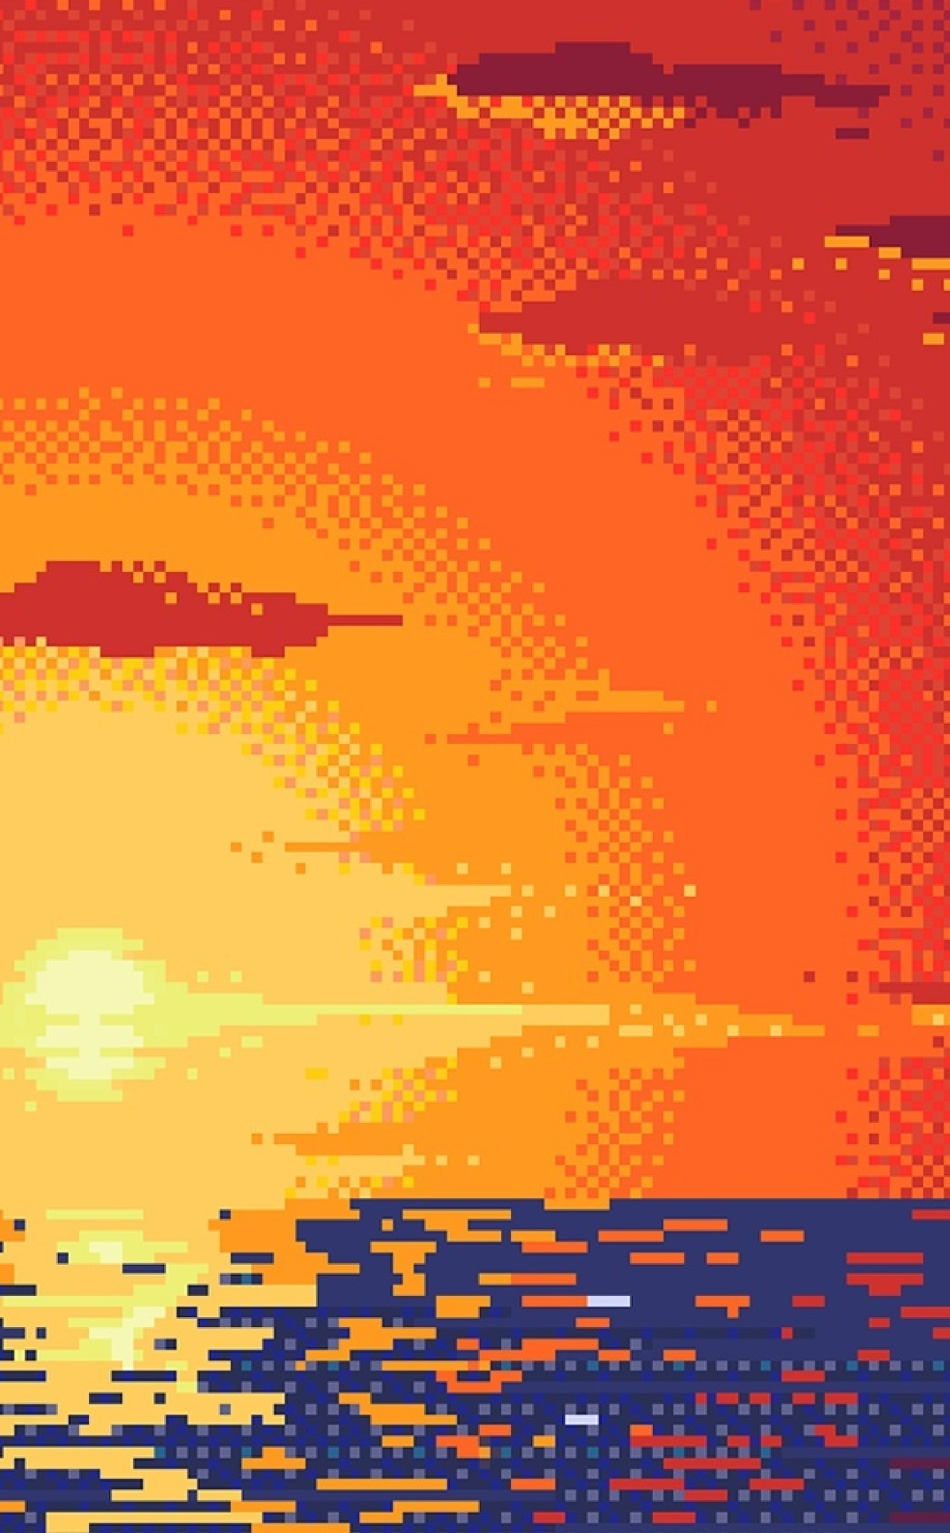 Pixel Sunset Digital Art Full Hd Wallpaper